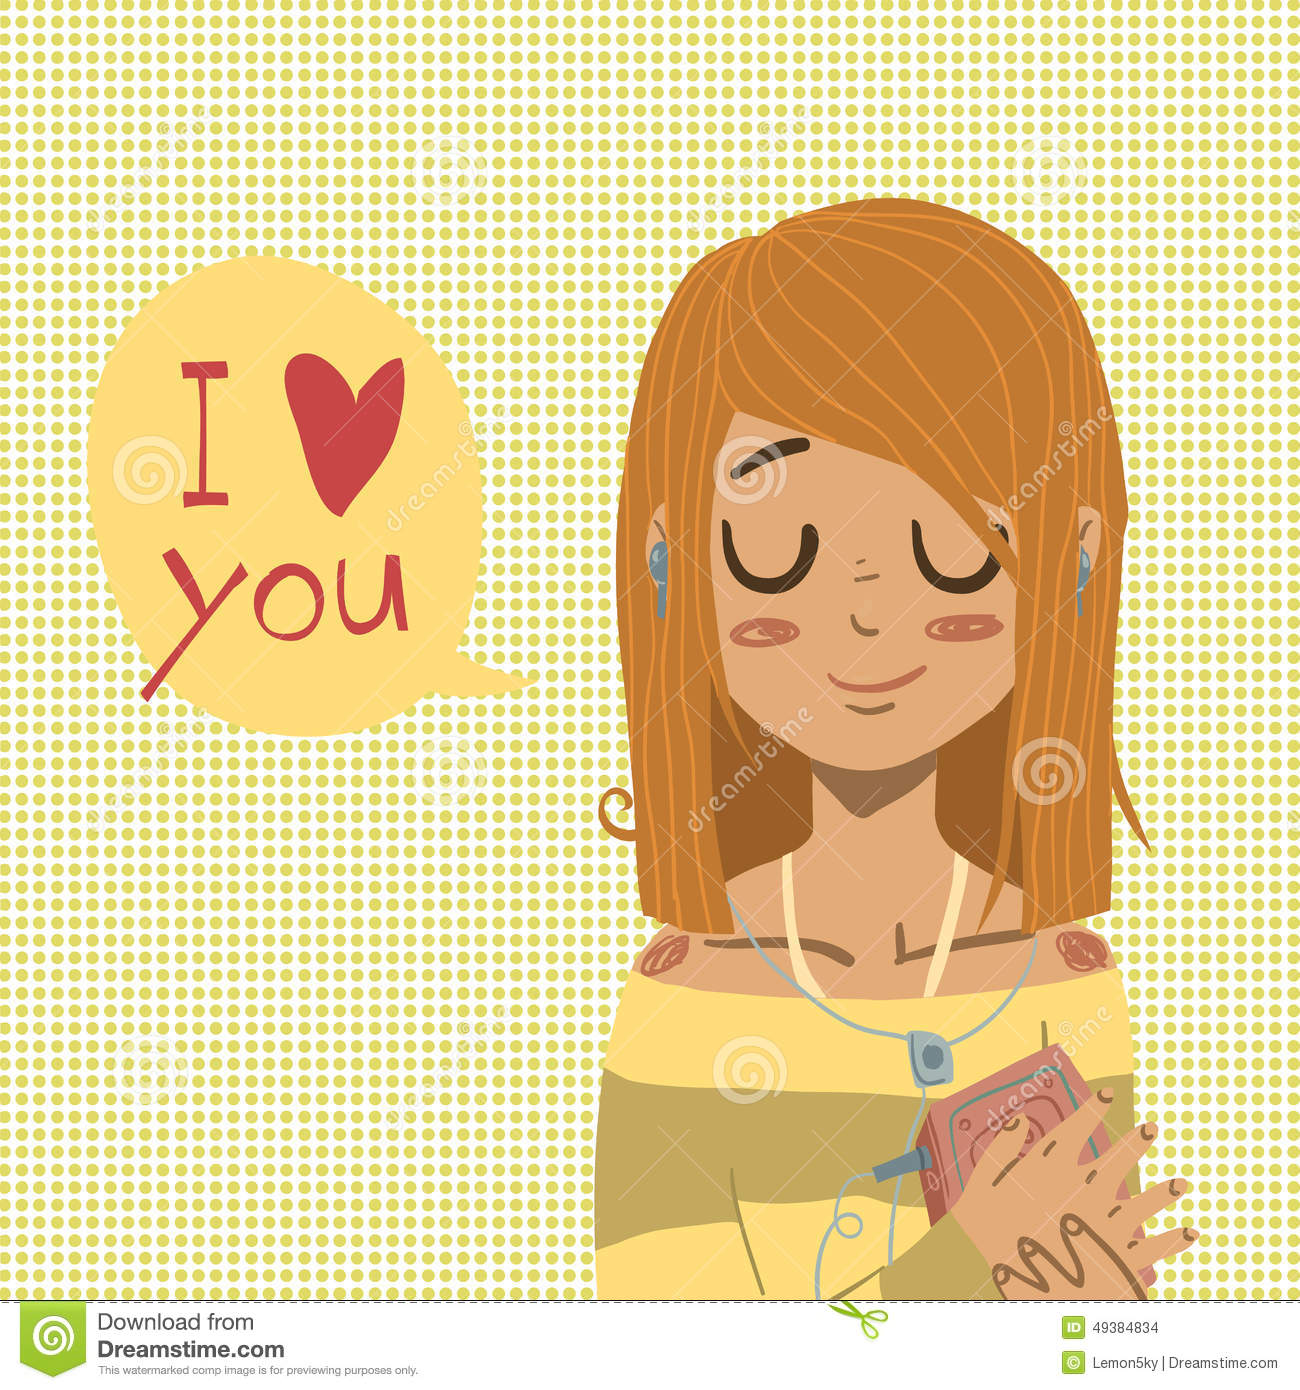 Love Quotes Wallpaper With cartoon : Vector cartoon Flat I Love You Greeting card. Stock Vector - Image: 49384834